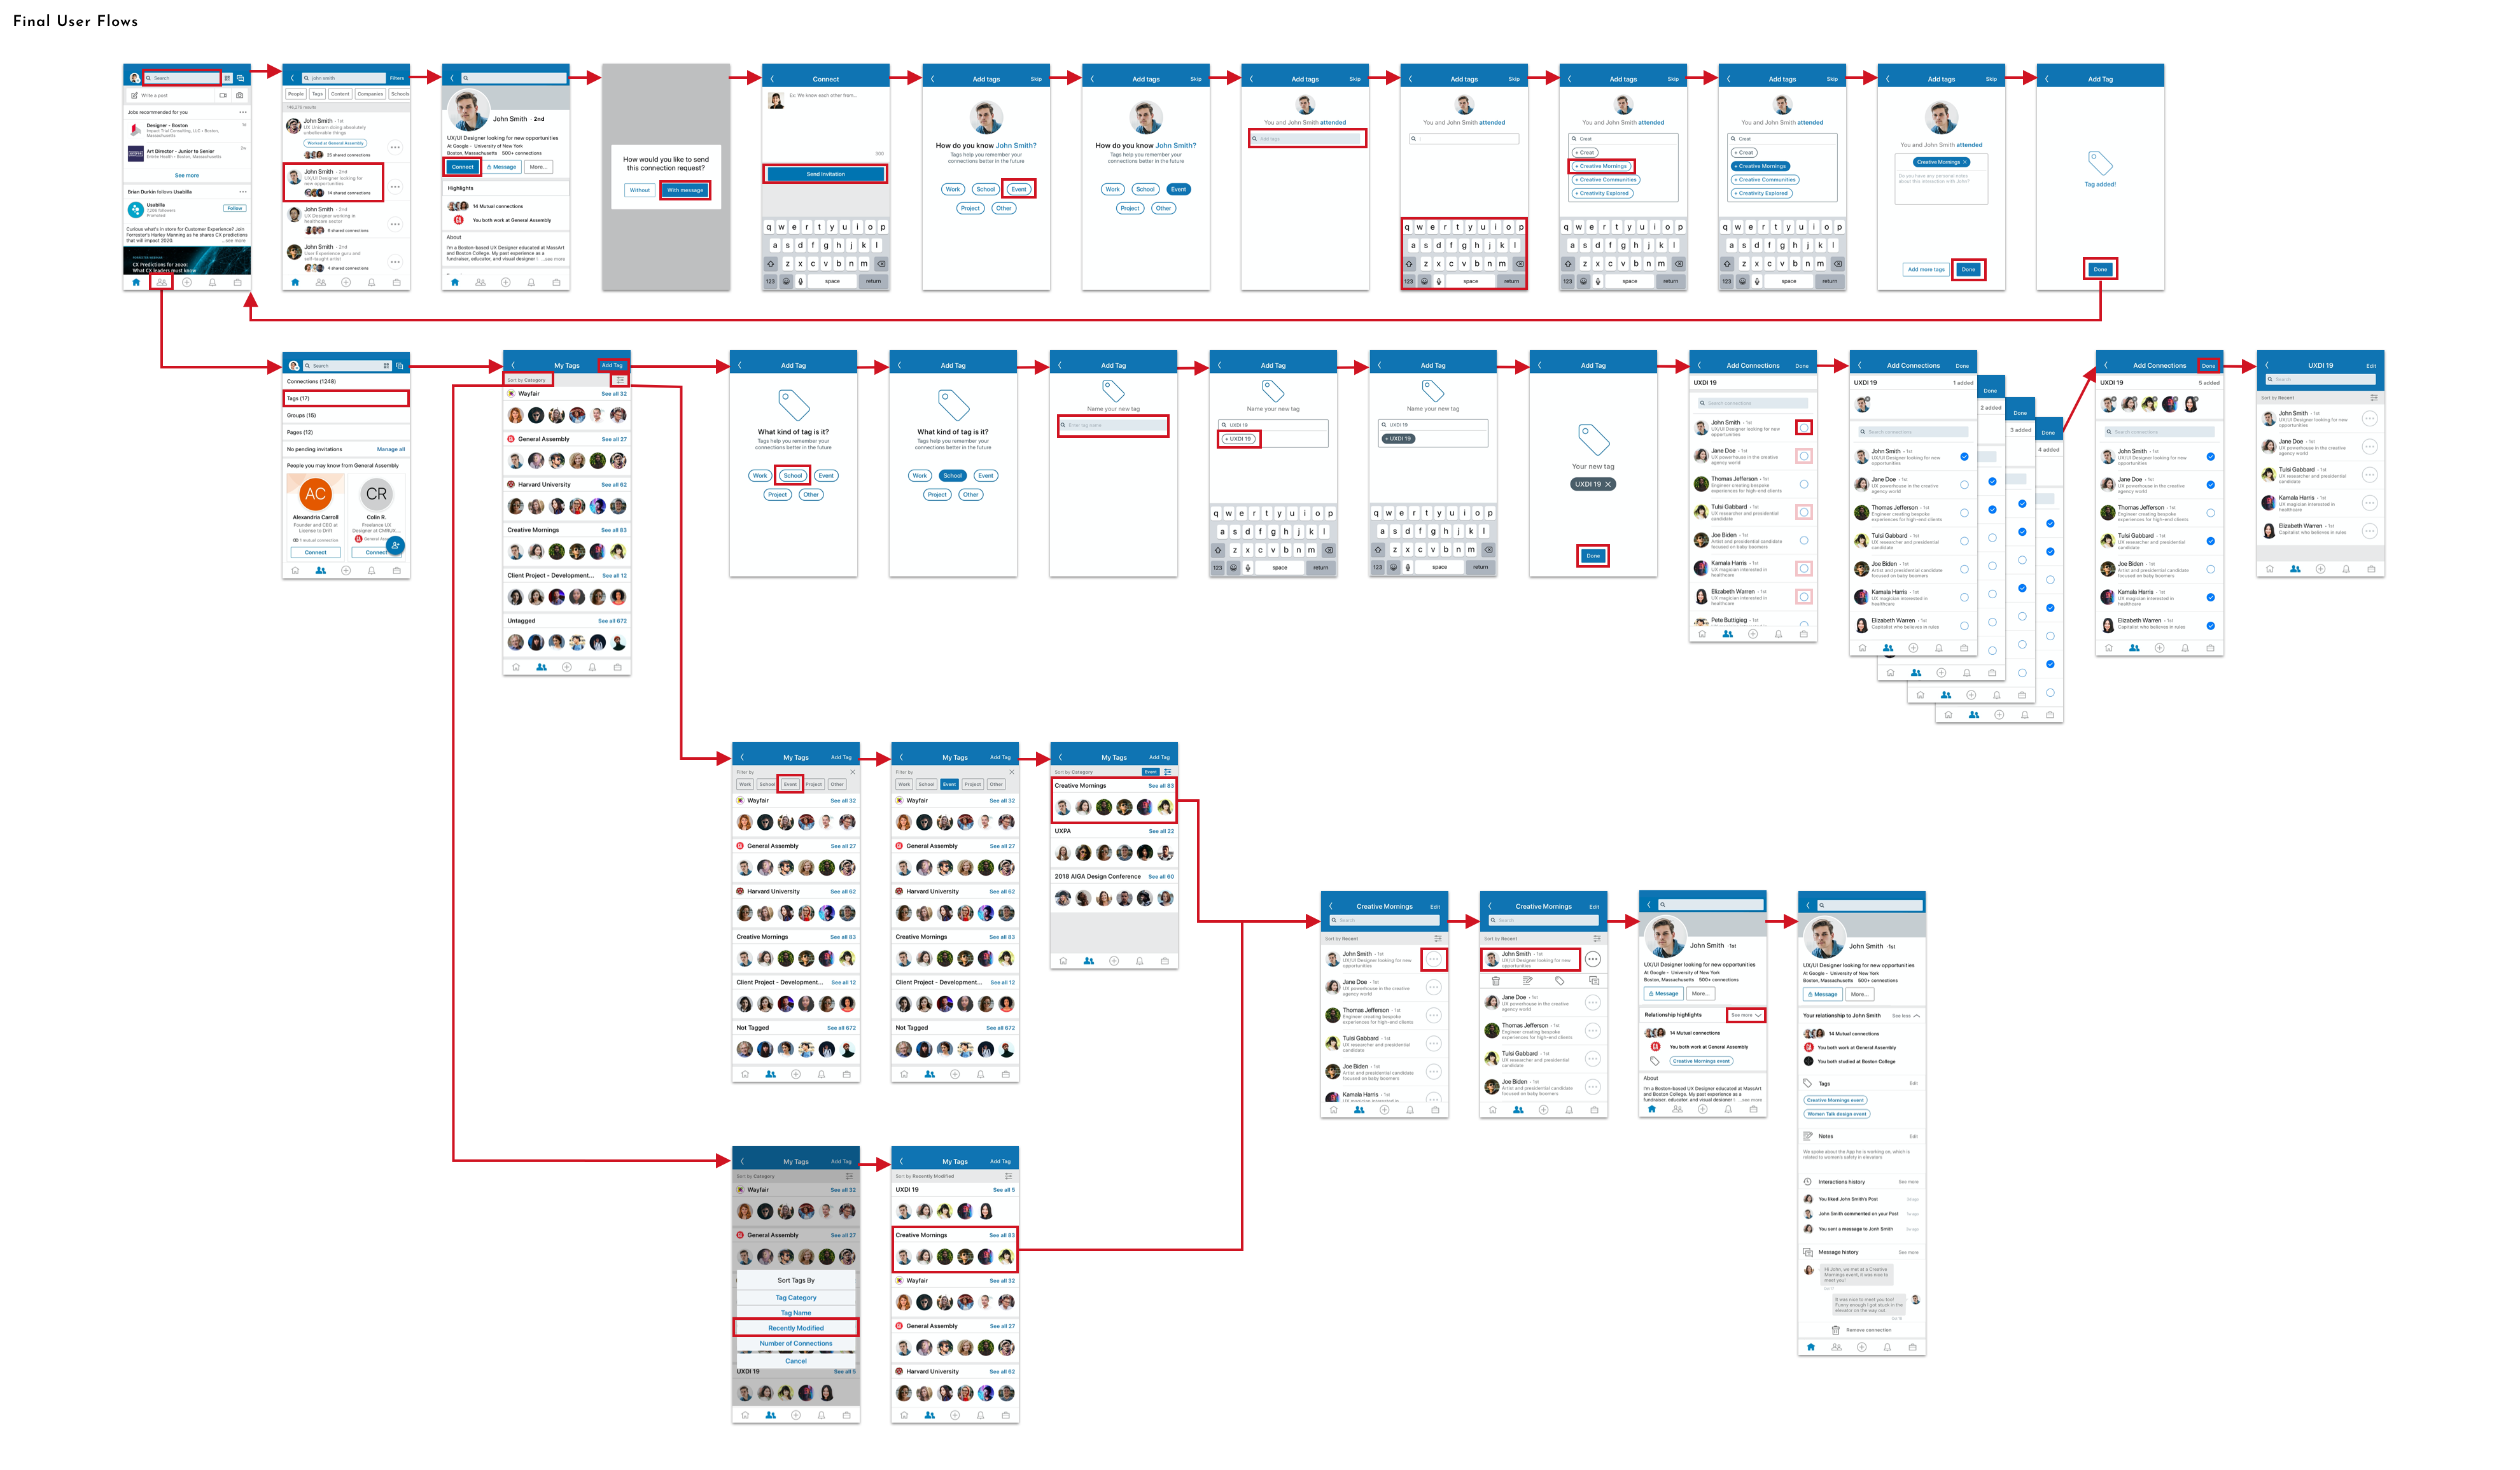 Final Wireframe User Flow of New Features